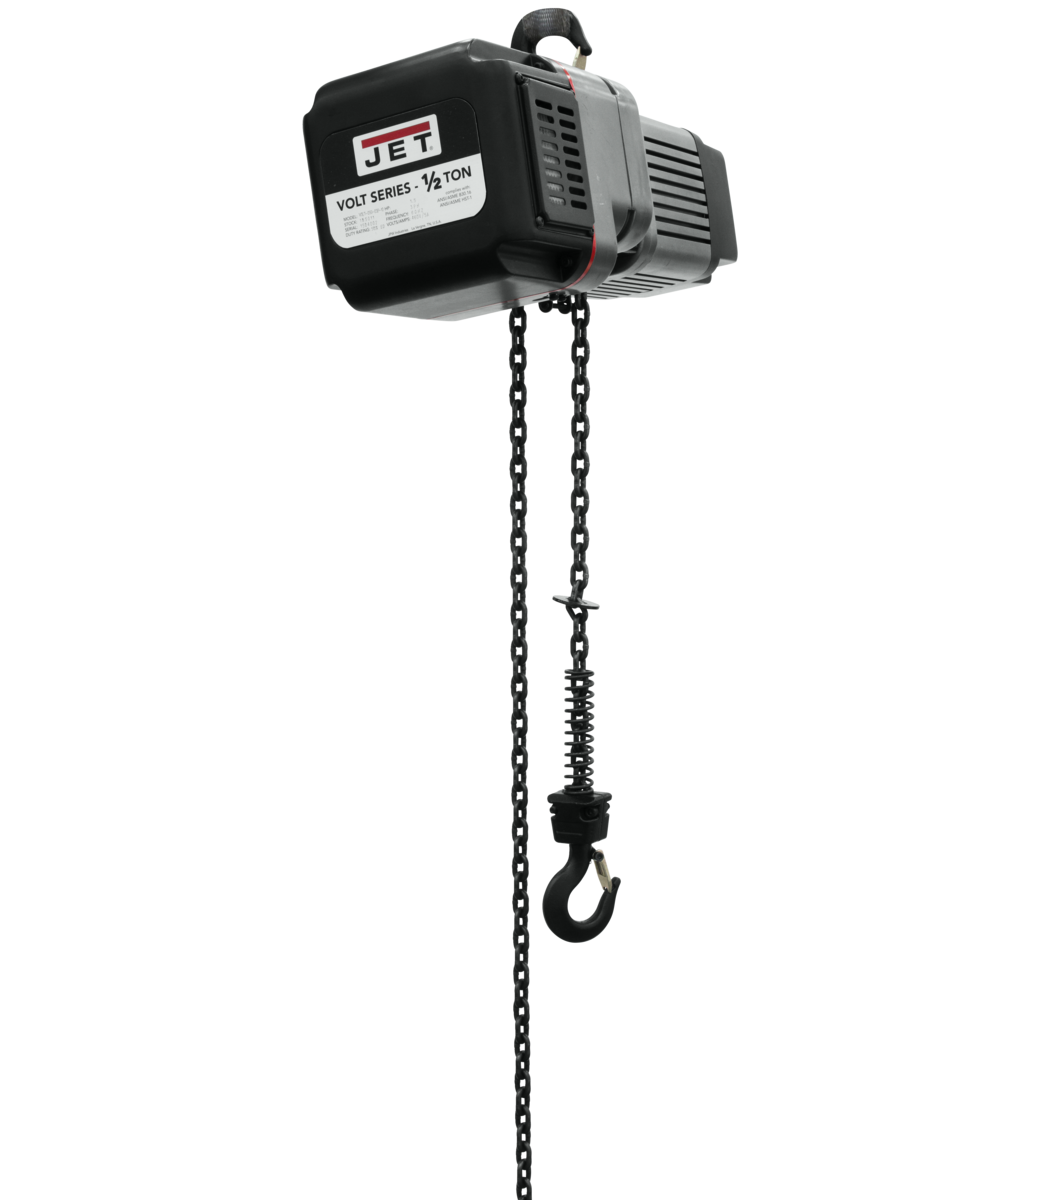 VOLT 1/2T VARIABLE-SPEED ELECTRIC HOIST 1PH/3PH 230V 20' LIFT